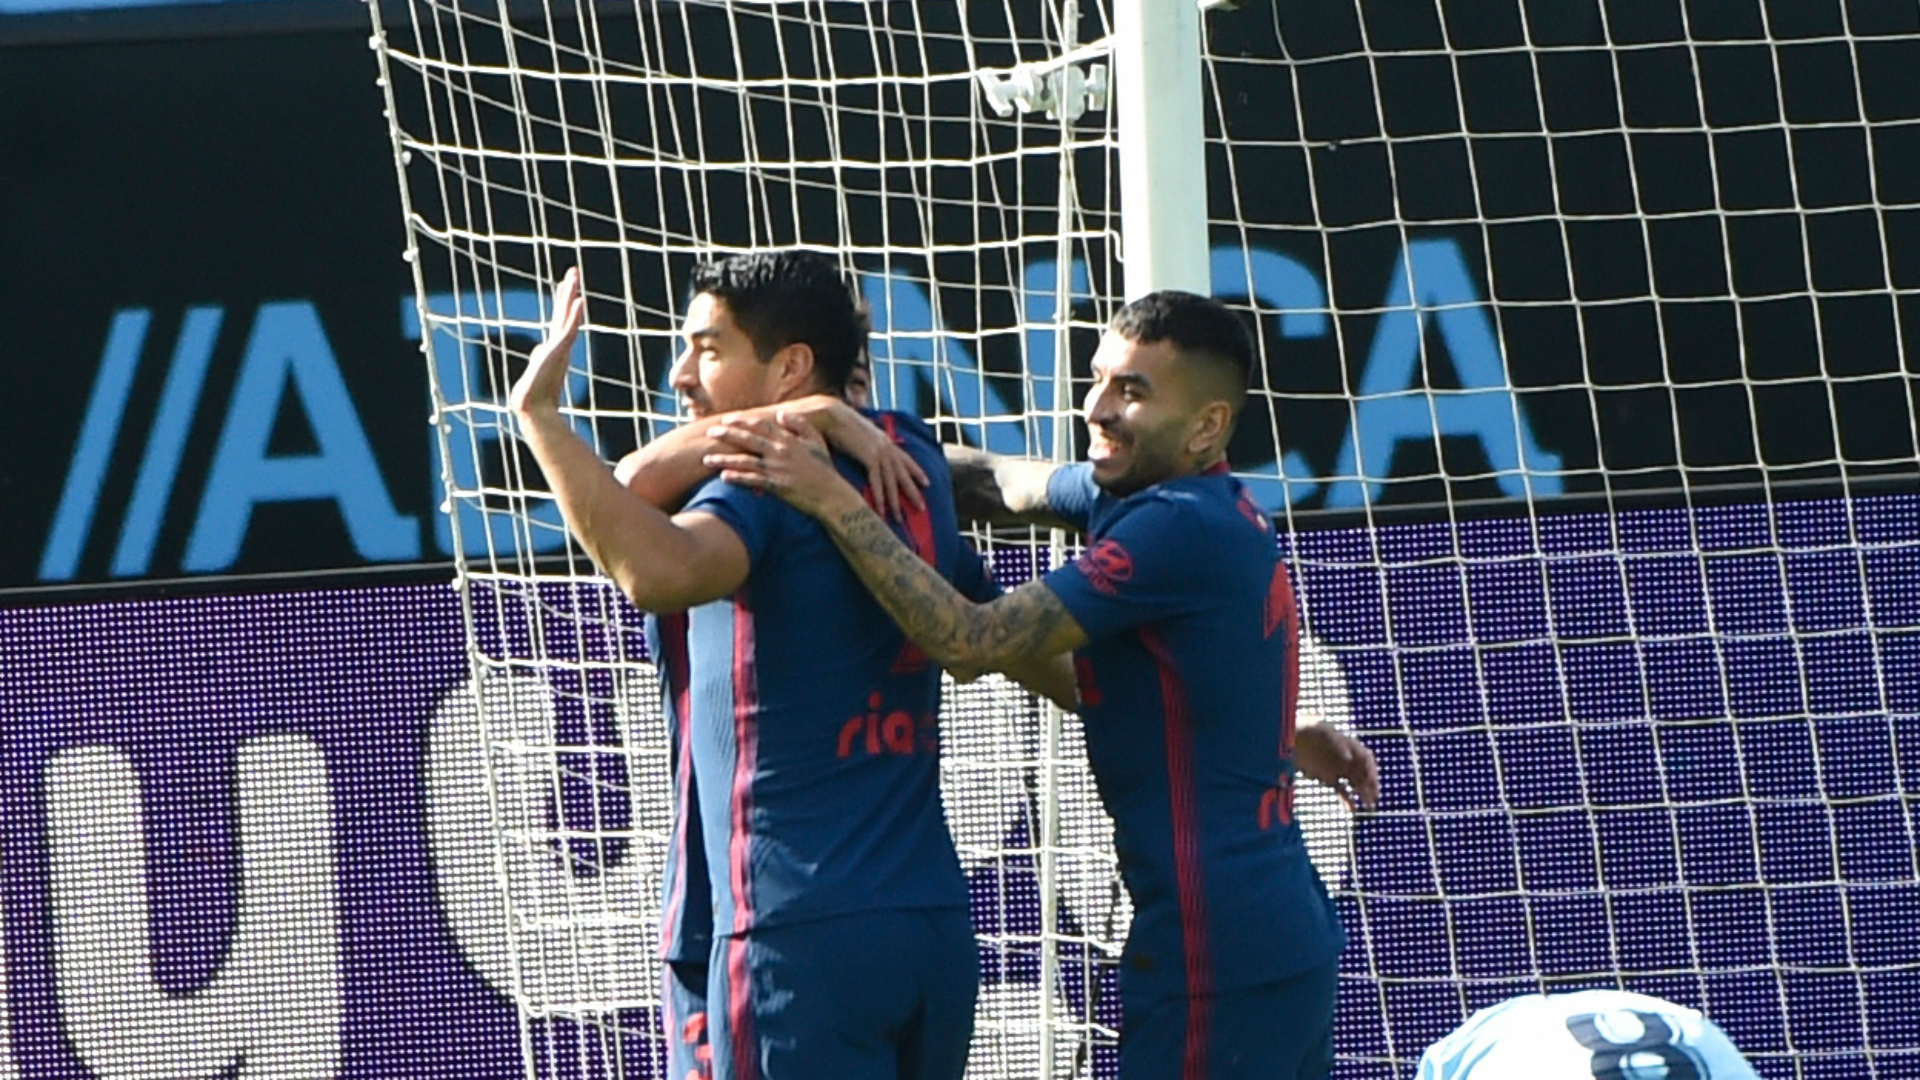 Quicker than Messi - Suarez becomes second fastest to 150 LaLiga goals this century